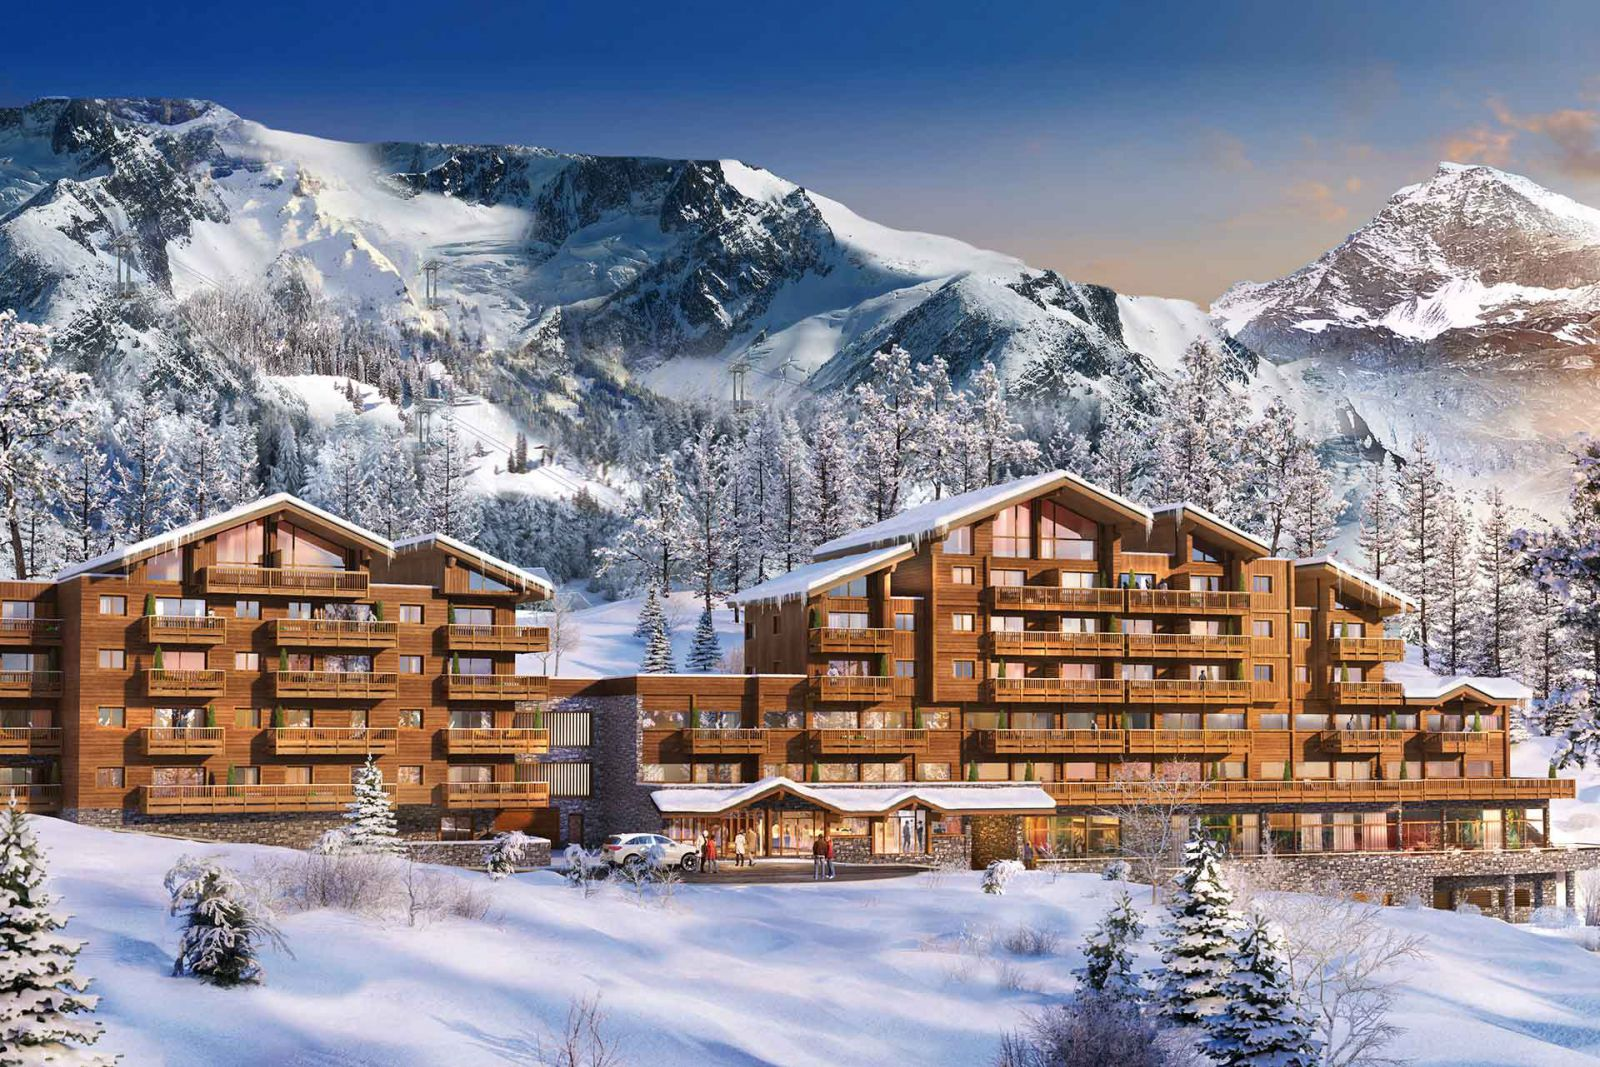 Le Lodge des Neiges, Tignes 1800 - Artists impression